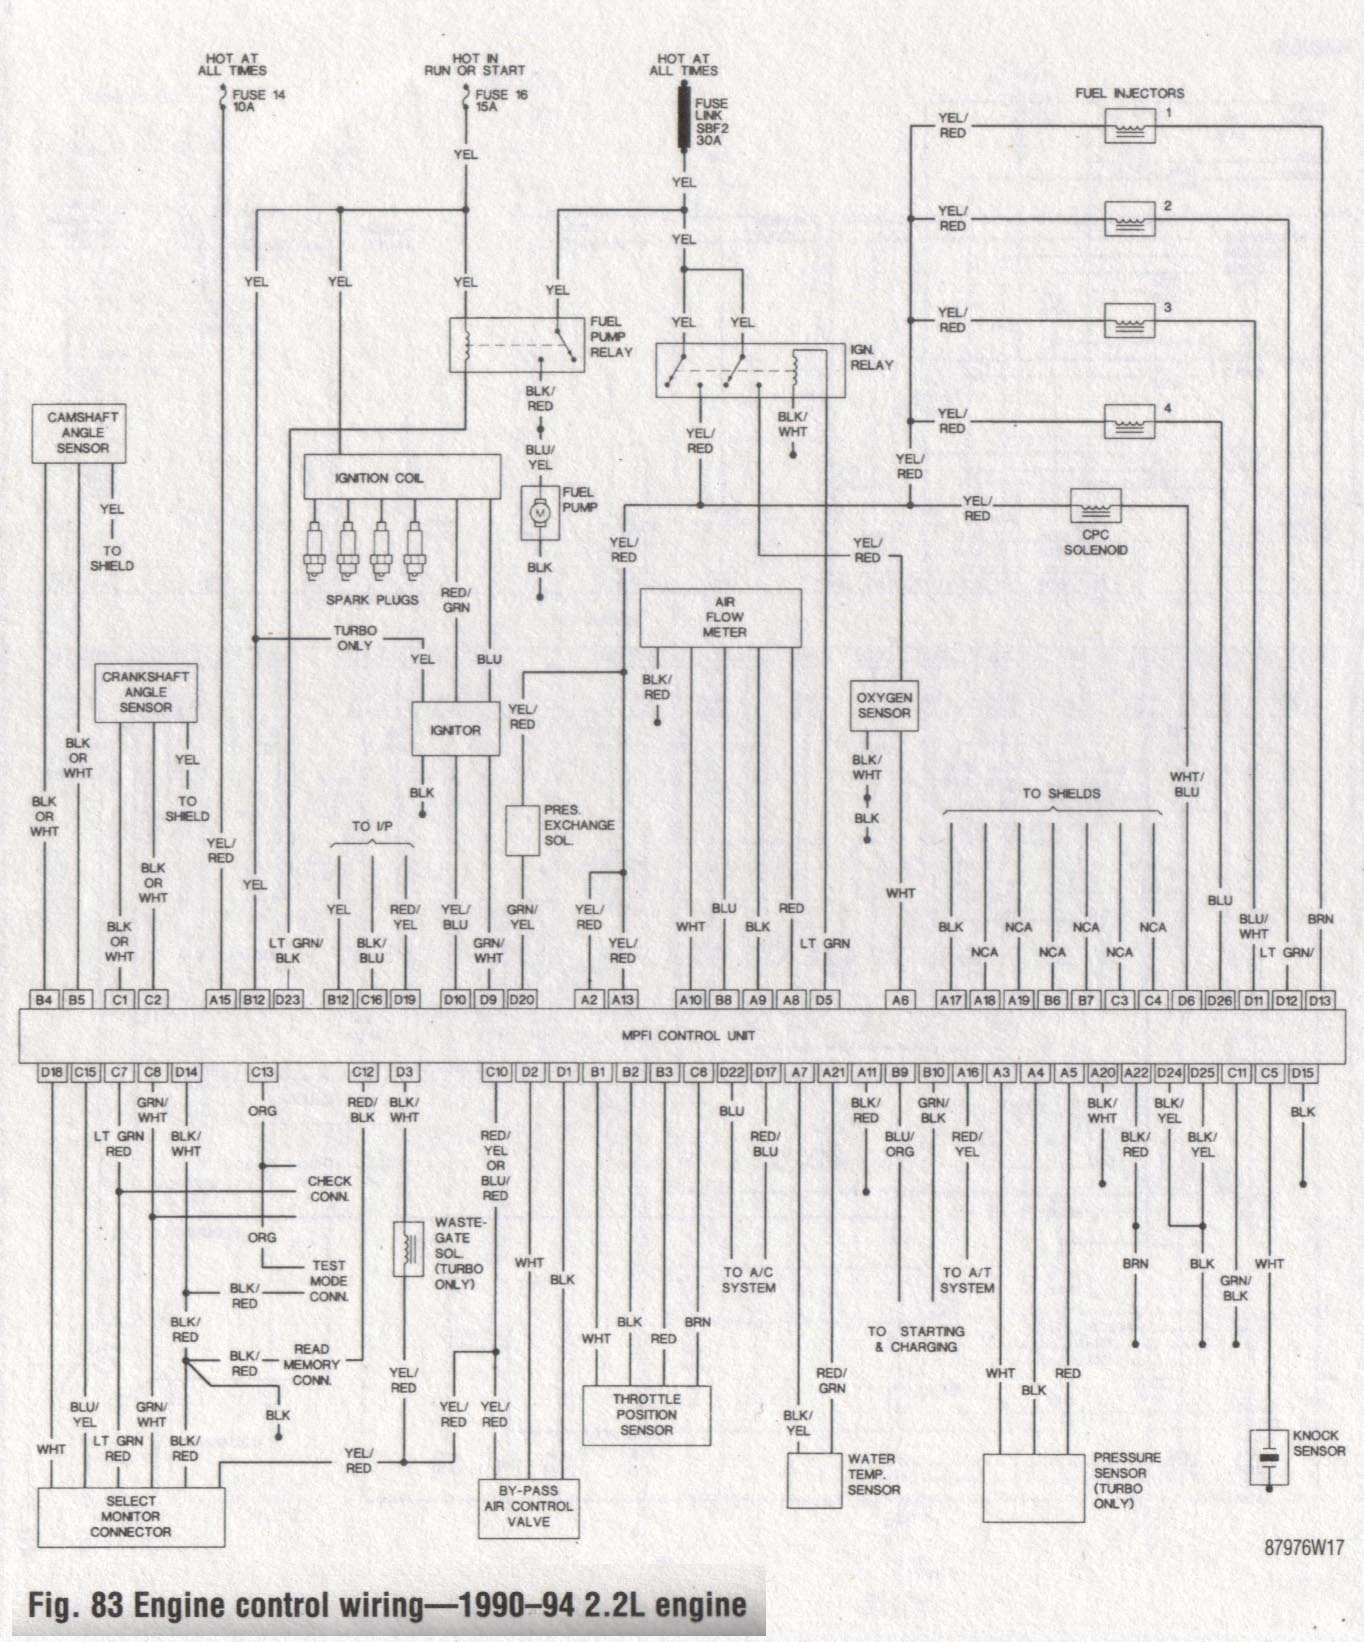 1998 Subaru Impreza Stereo Wiring Diagram Wiring Diagram Collection – Wrx Wiring Diagram